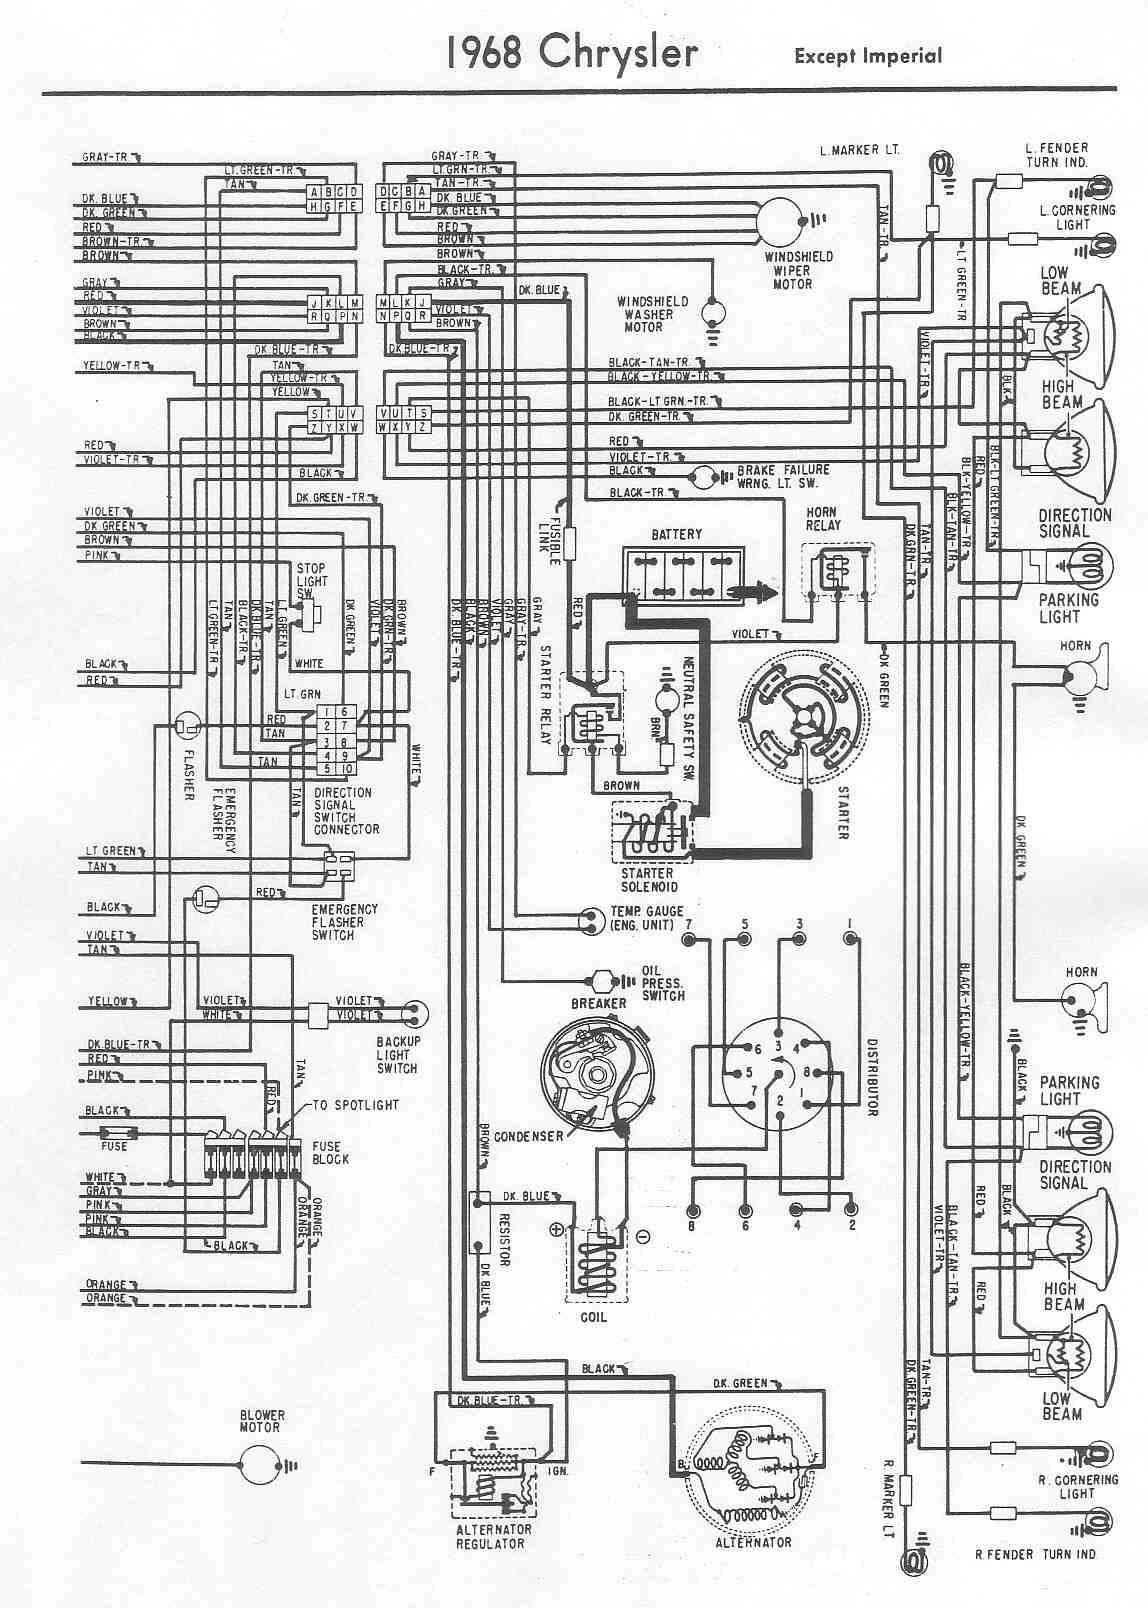 Wiring Diagram For 1972 Impala - Download Wiring Diagrams •